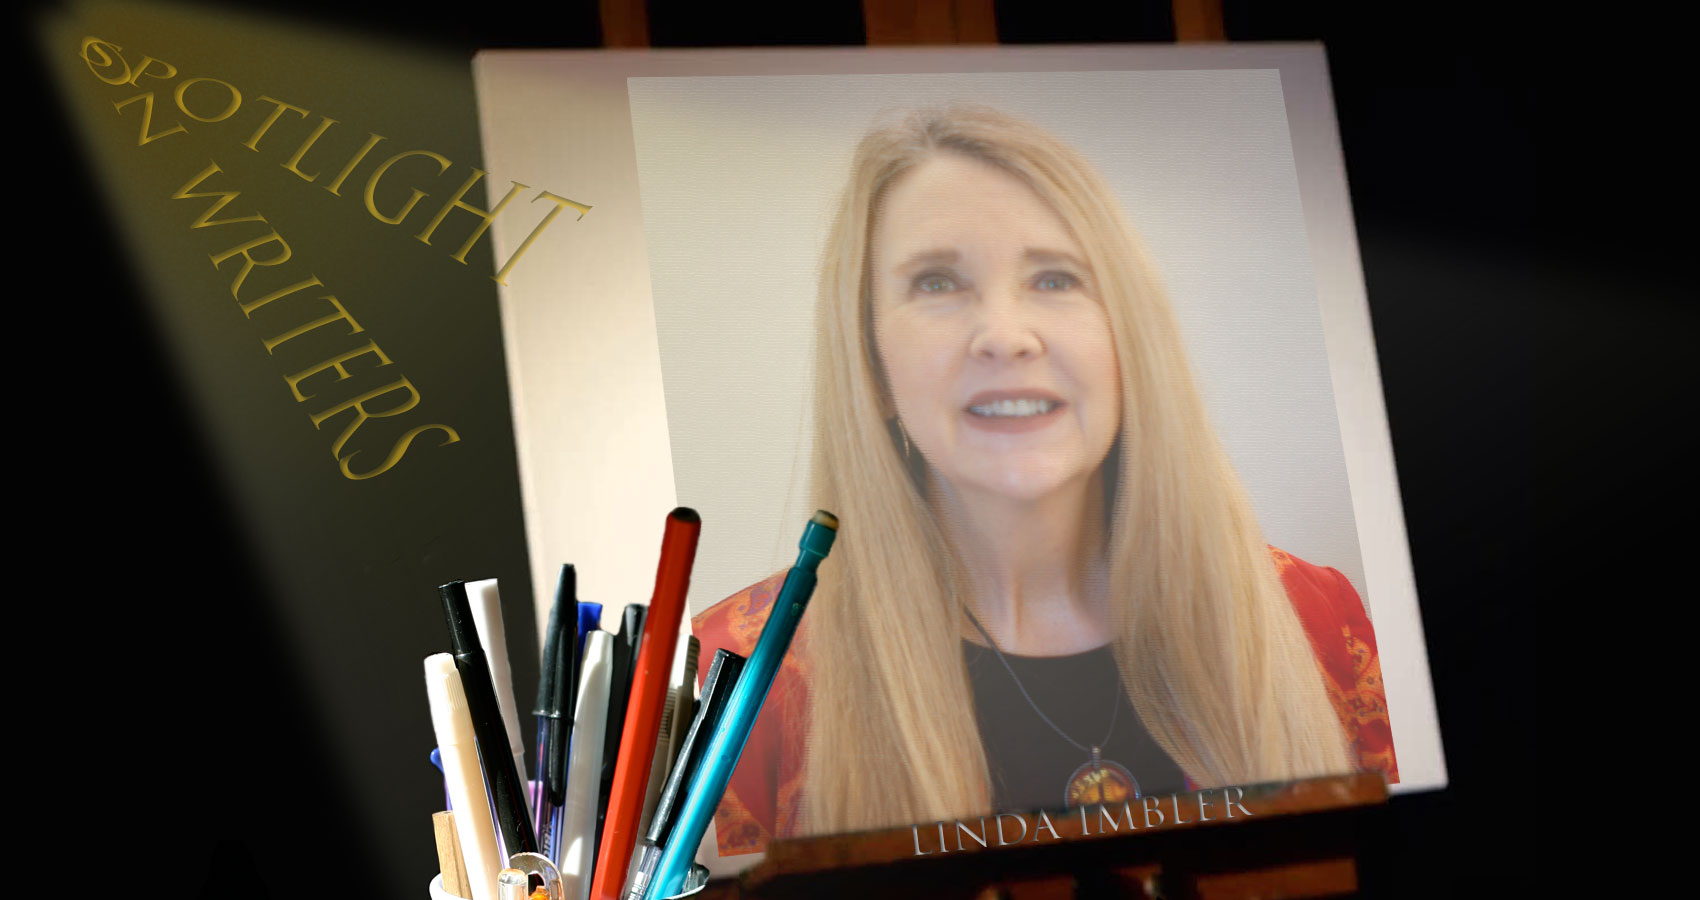 Spotlight On Writers - Linda Imbler, interview at Spillwords.com